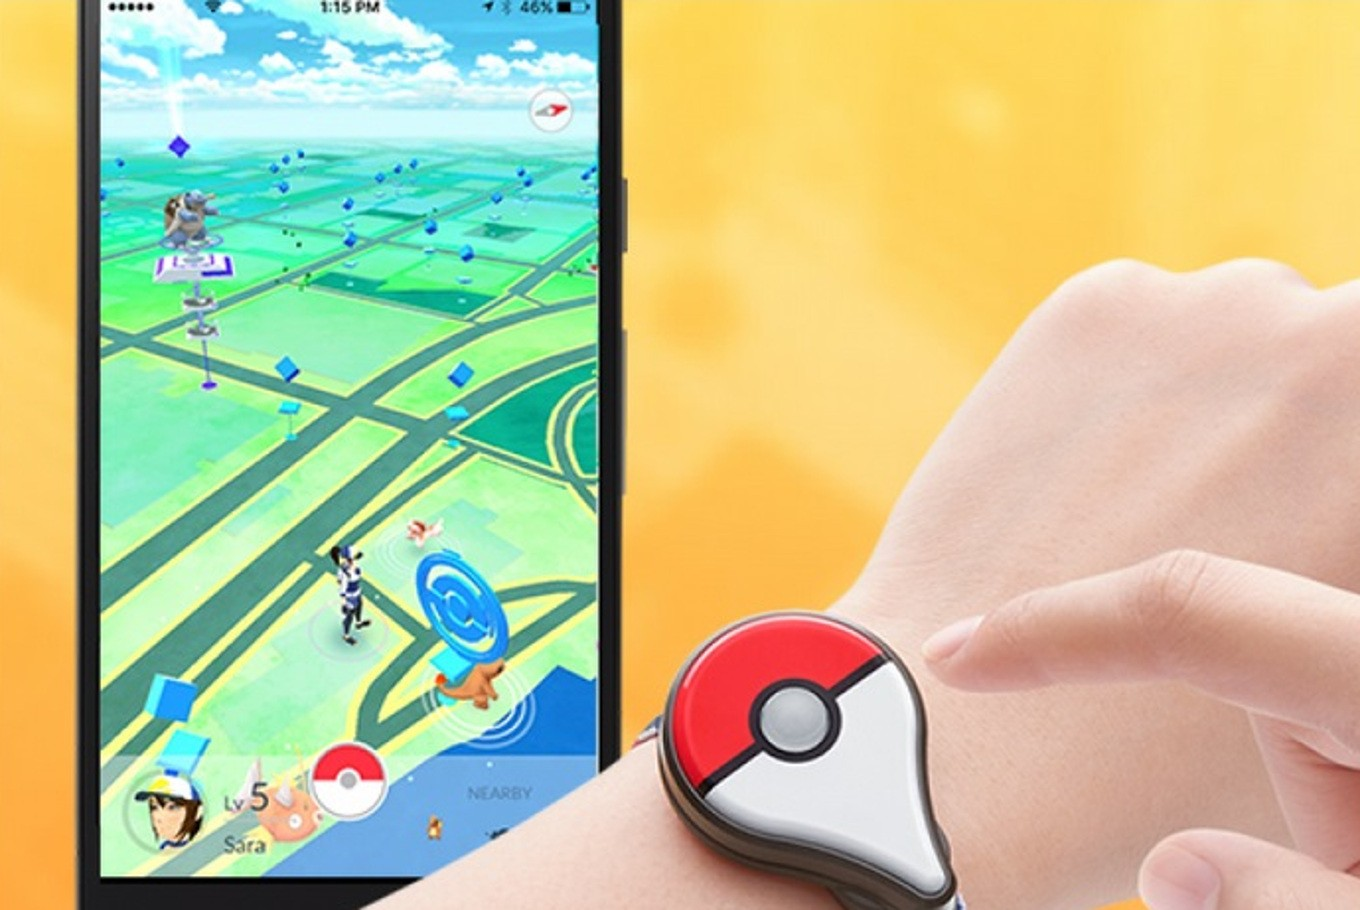 Dedicated wearable device Pokemon Go Plus to be launched Sept 16